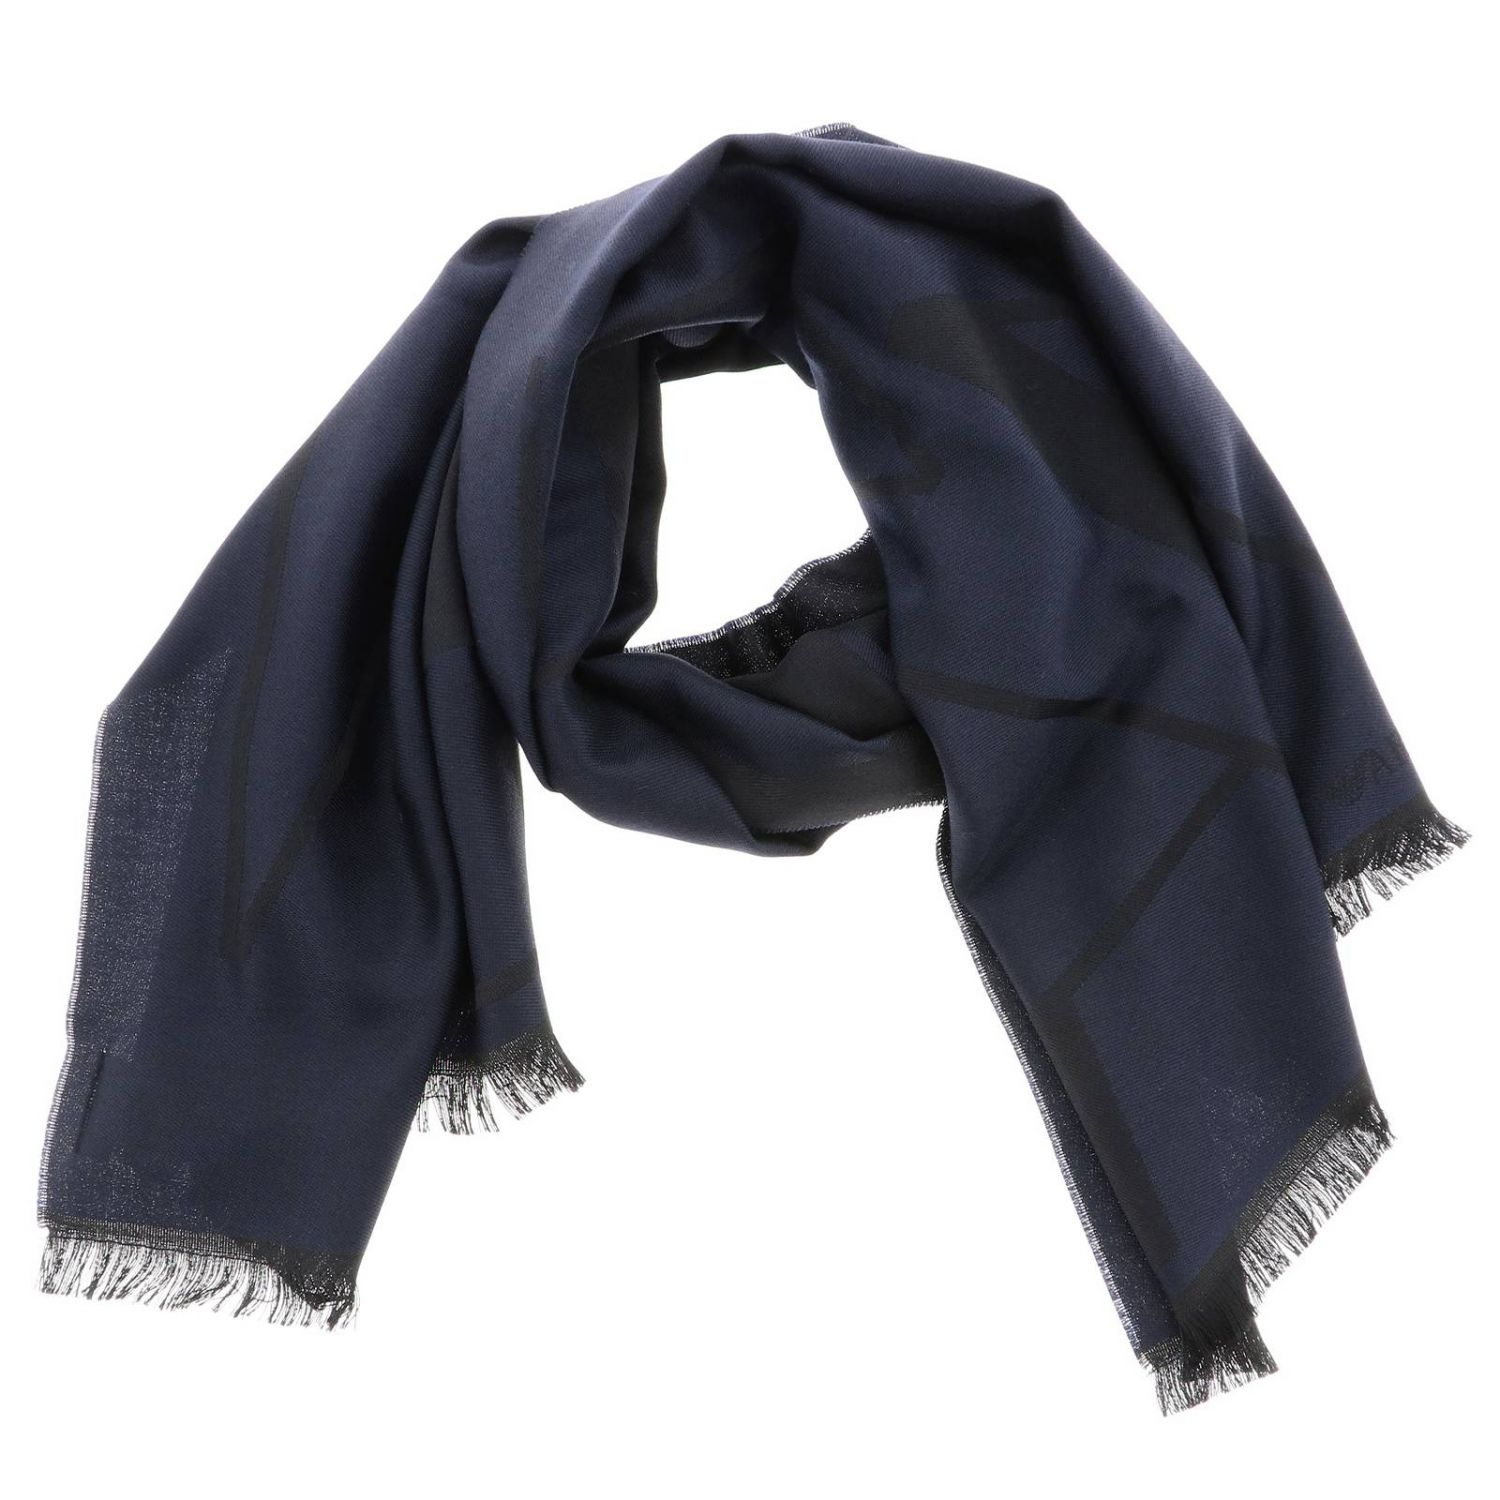 Scarf Emporio Armani: Emporio Armani scarf in basic blended wool with logo blue 2